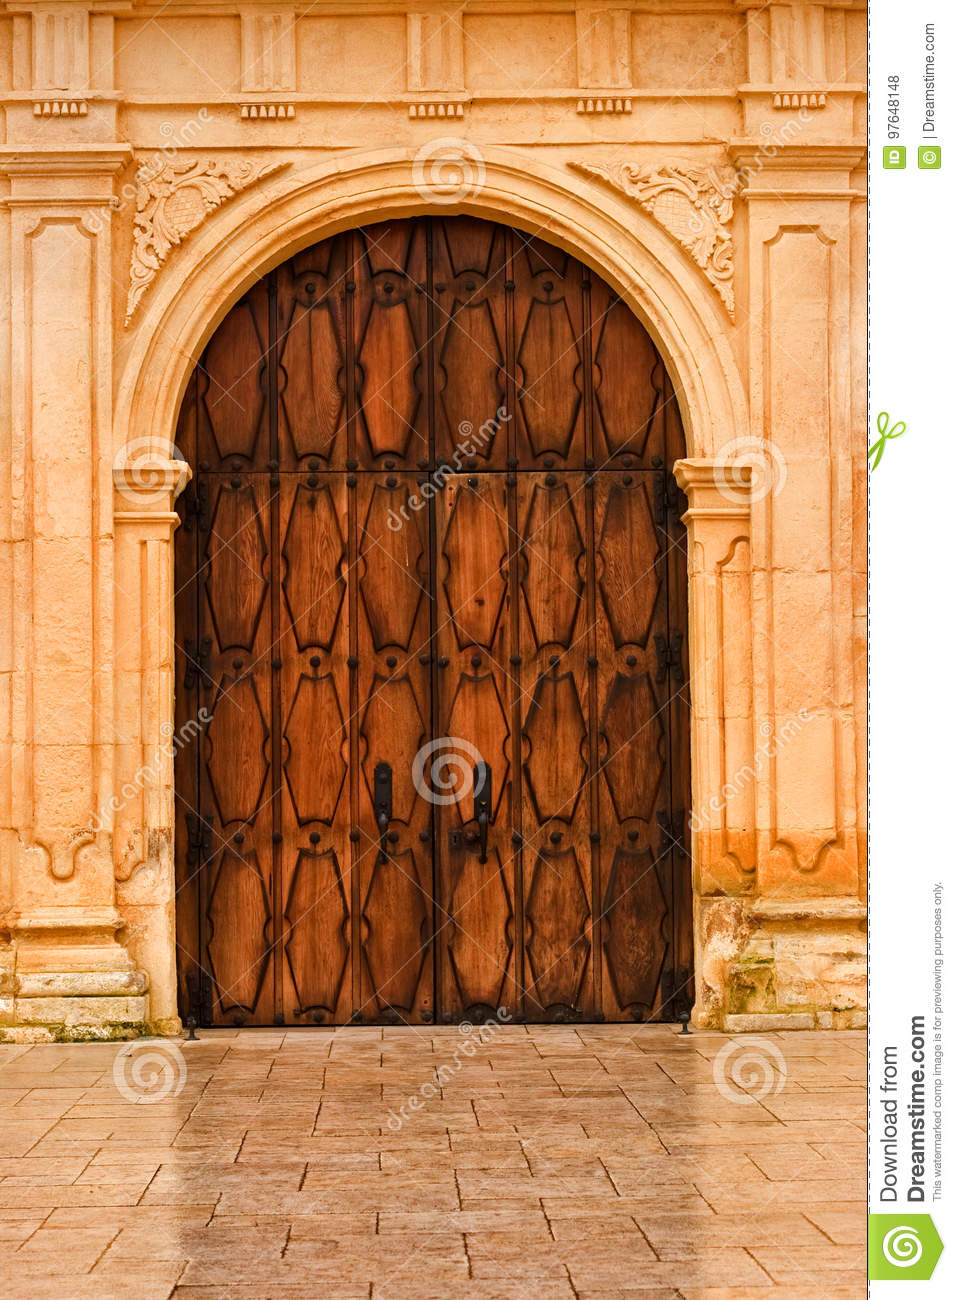 Wooden Front Doors Of San Carlos Cathedral Stock Photo Image Of